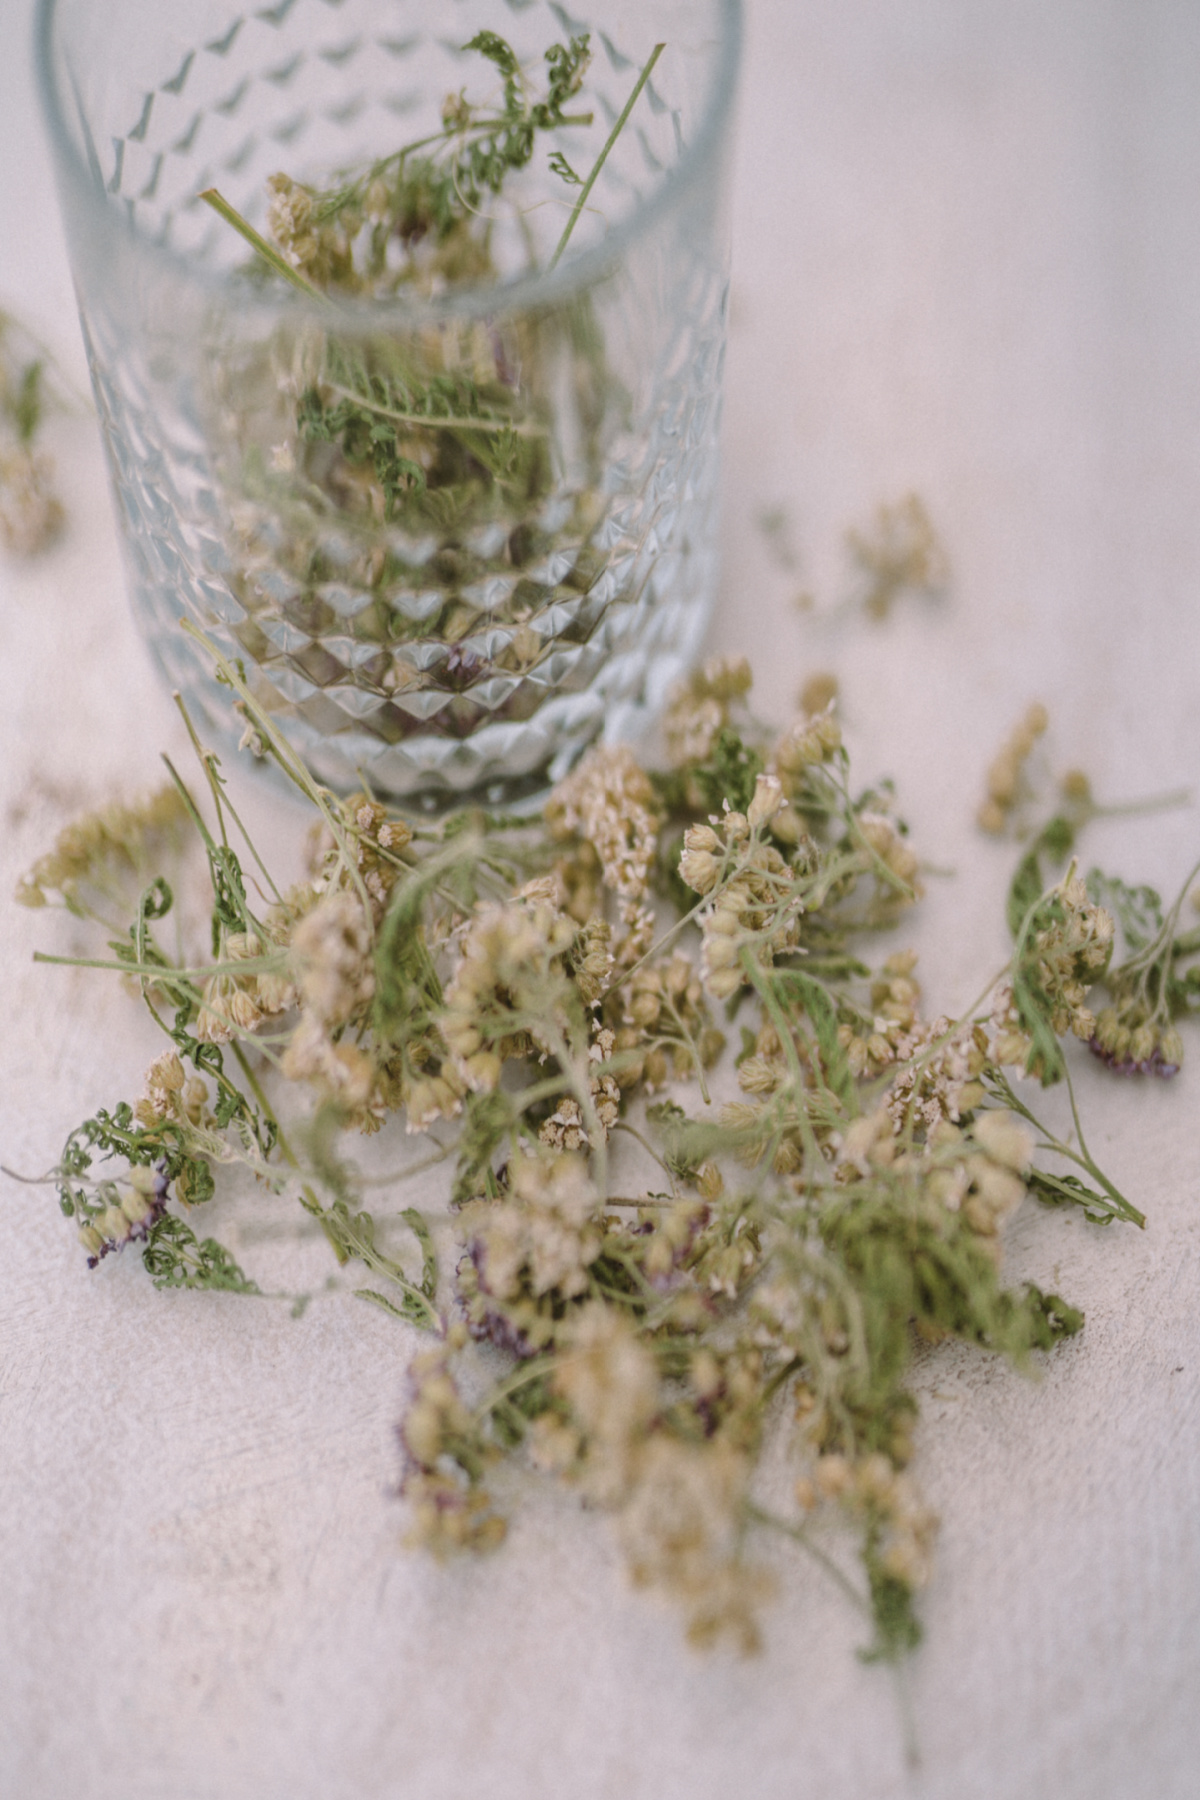 dried yarrow leaves in a glass and scattered on a table